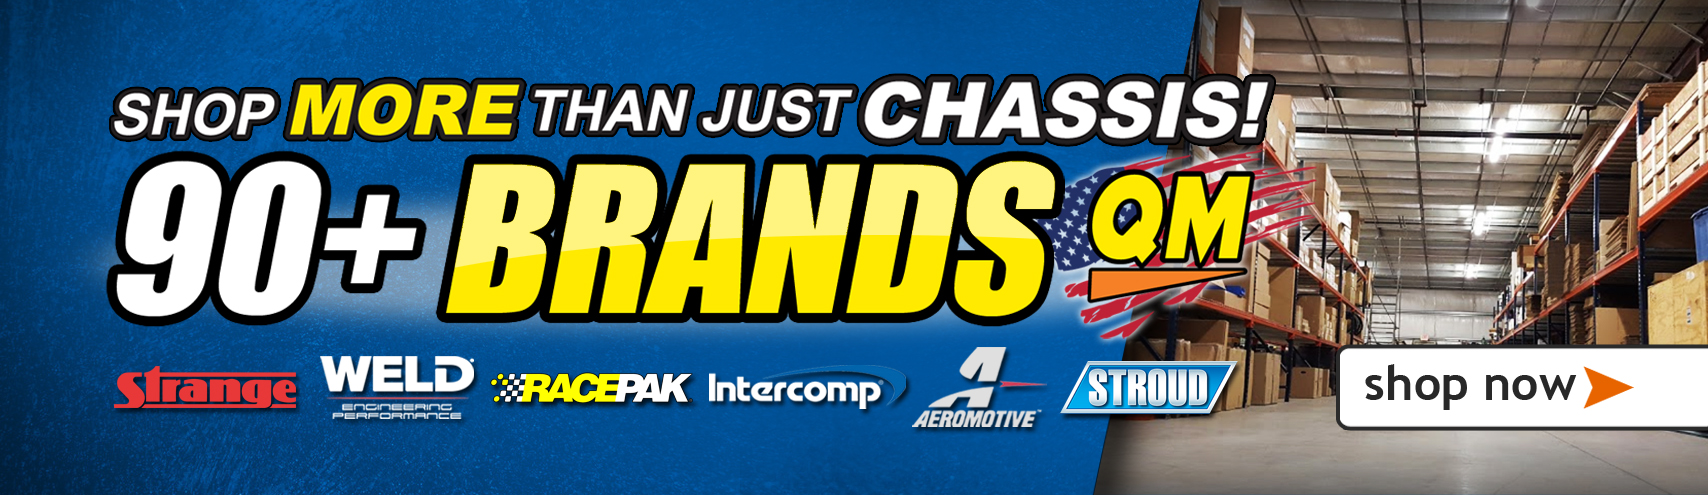 Shop MORE than just chassis at Quarter-Max! 90+ Brands!